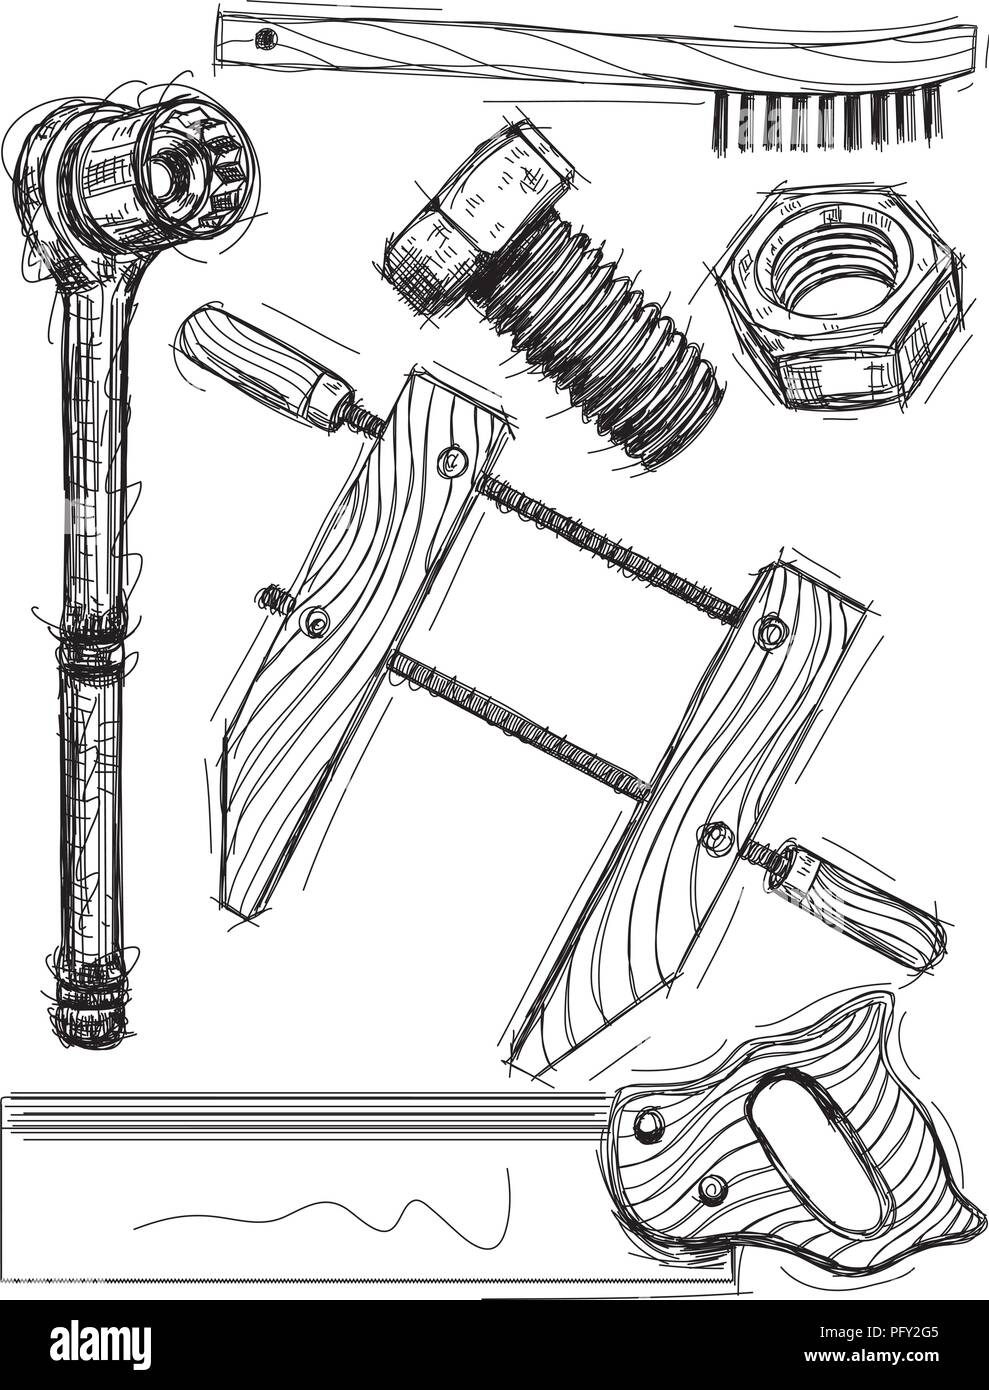 Work tool sketches - Stock Vector